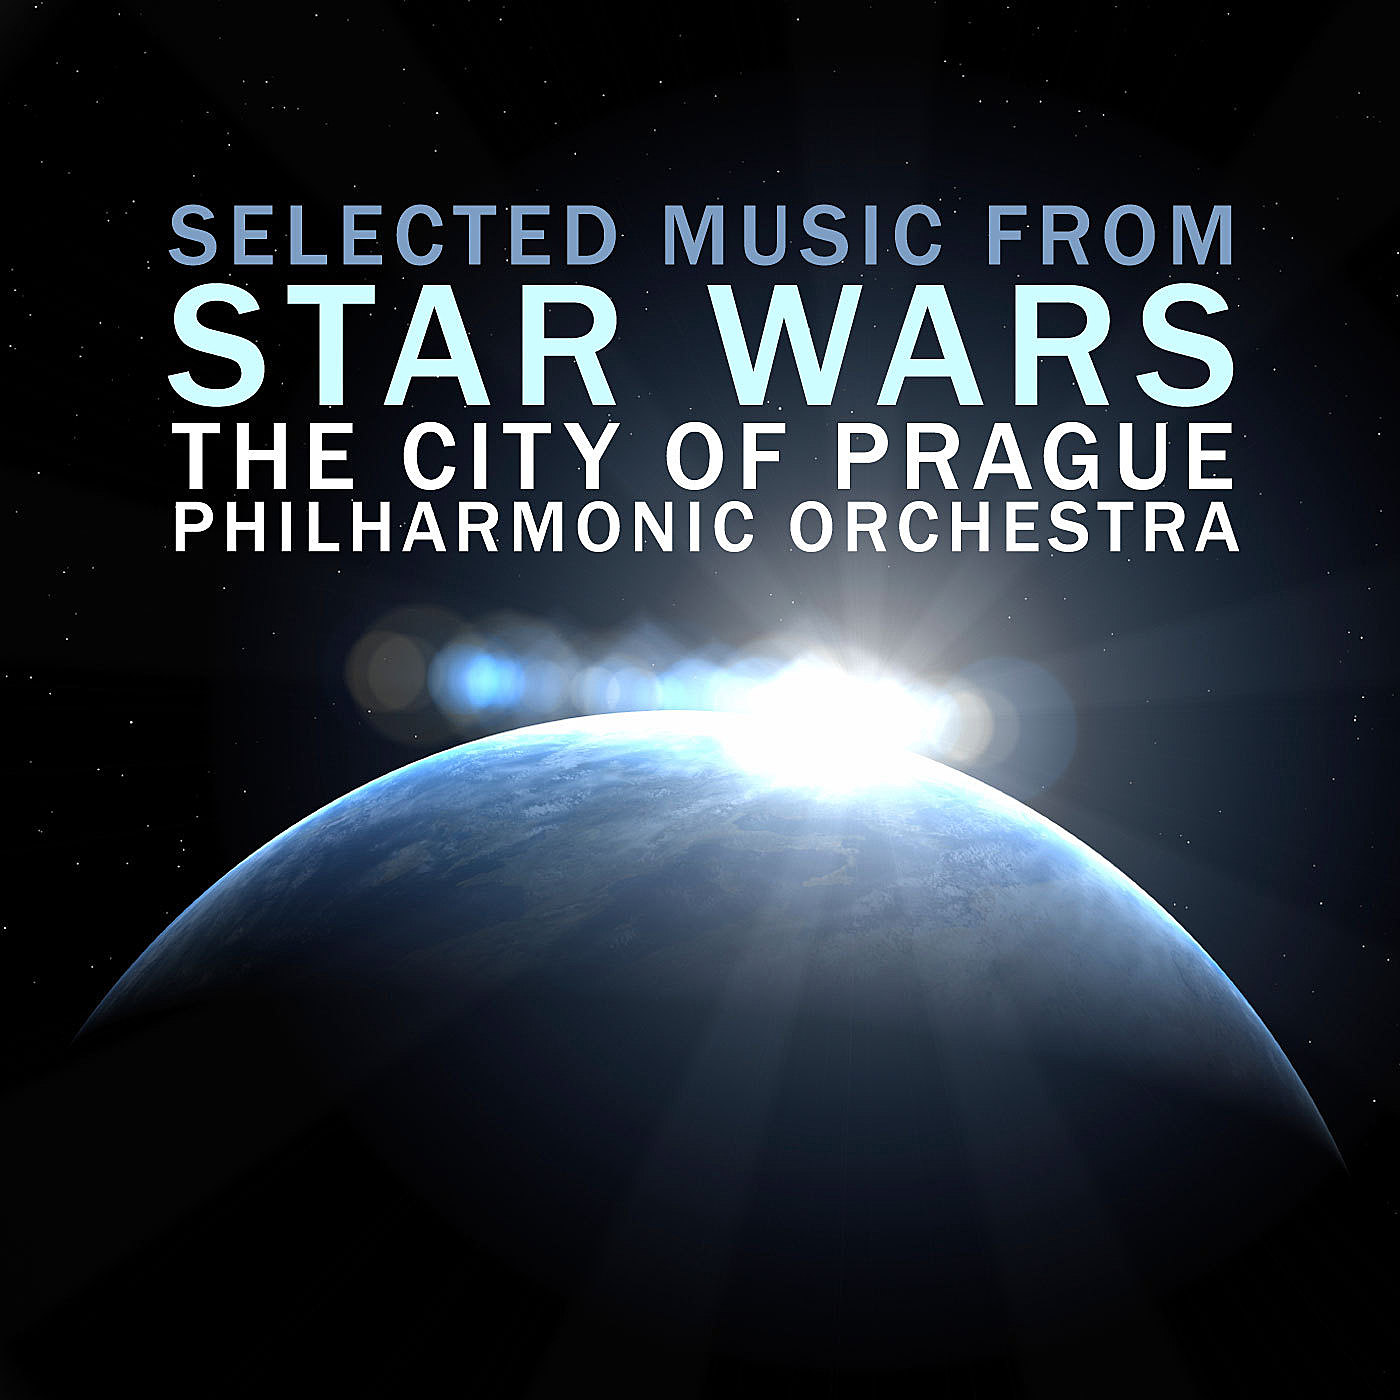 The Six Star Wars Films - New Recordings of the Classic Scores